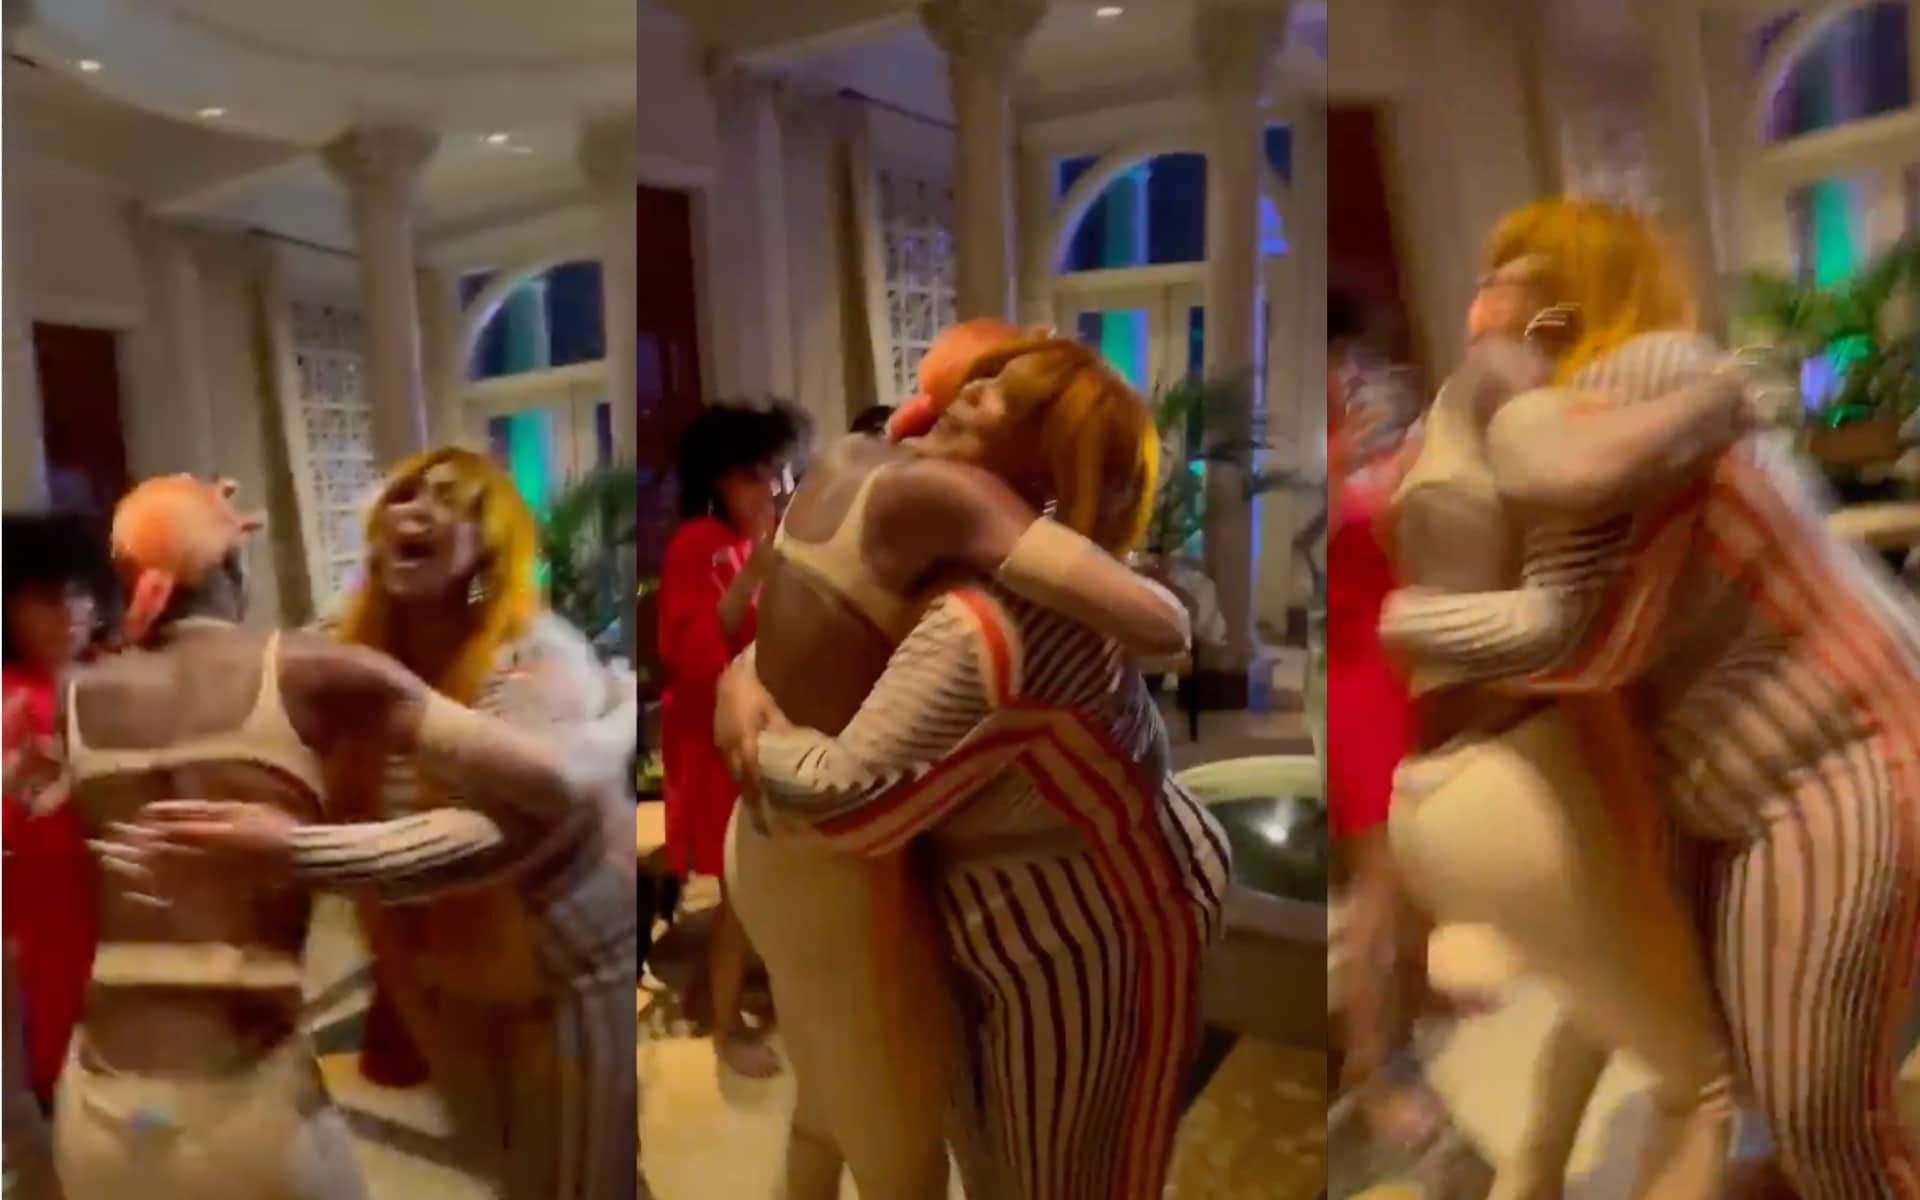 Lizzo and Symone hugging